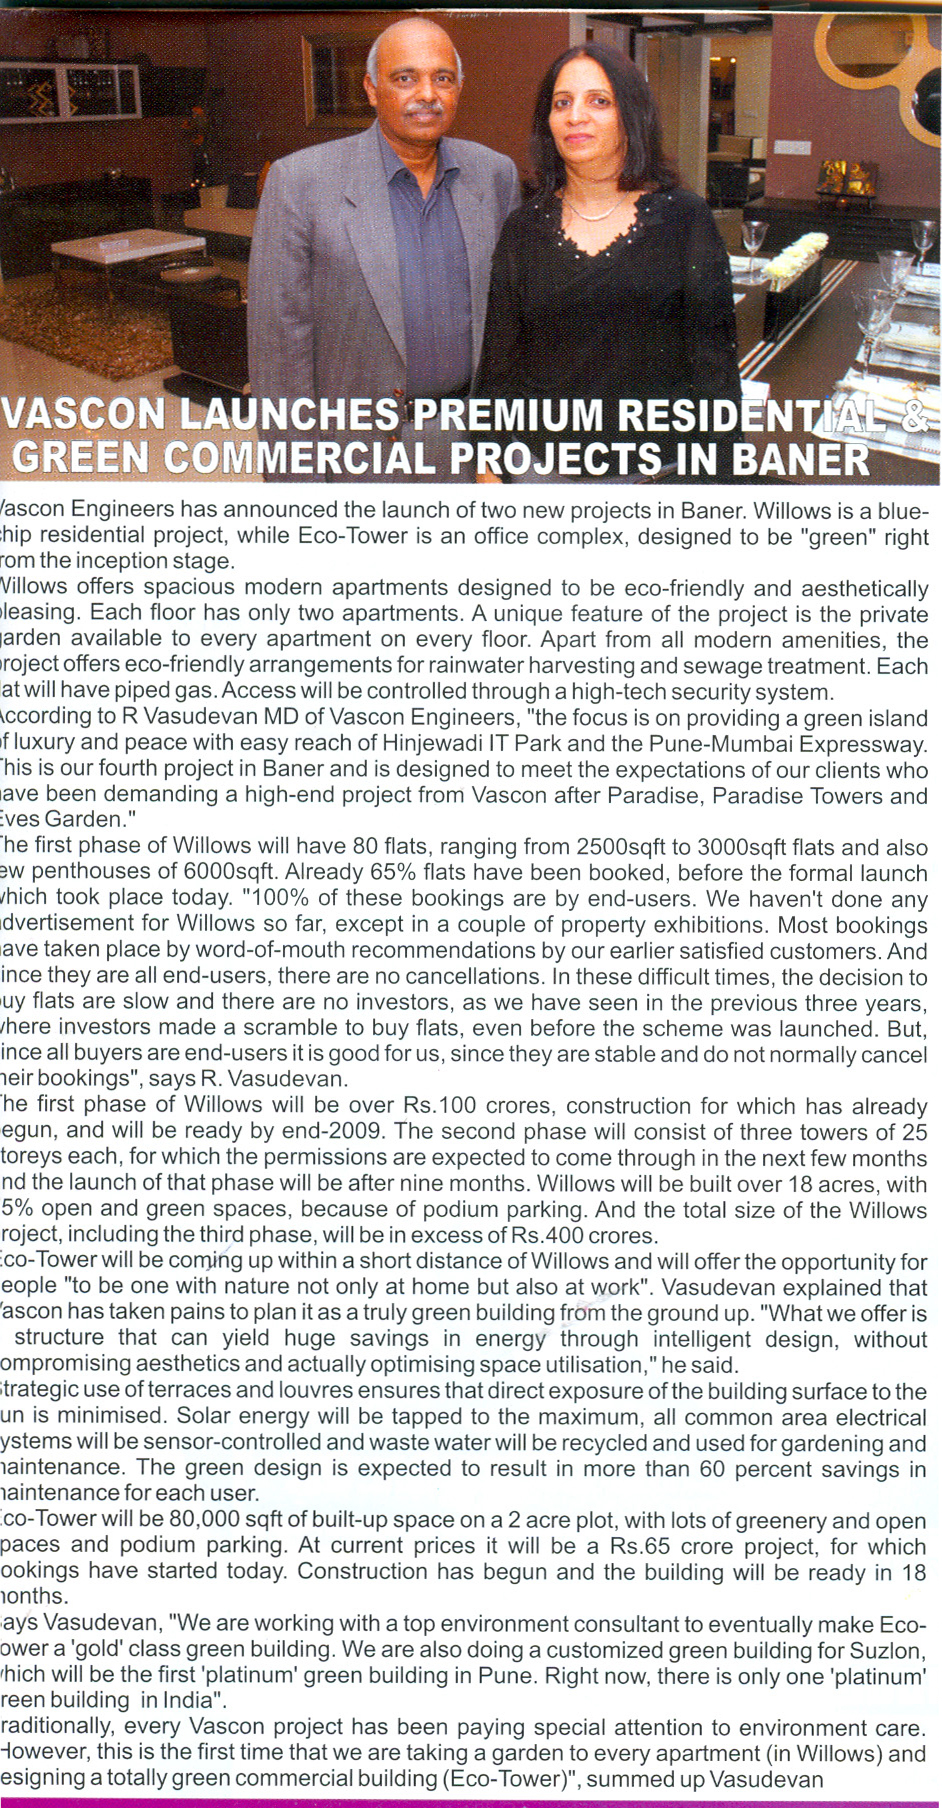 Vascon Launches Premium Residential & Green Commercial Projects in Baner